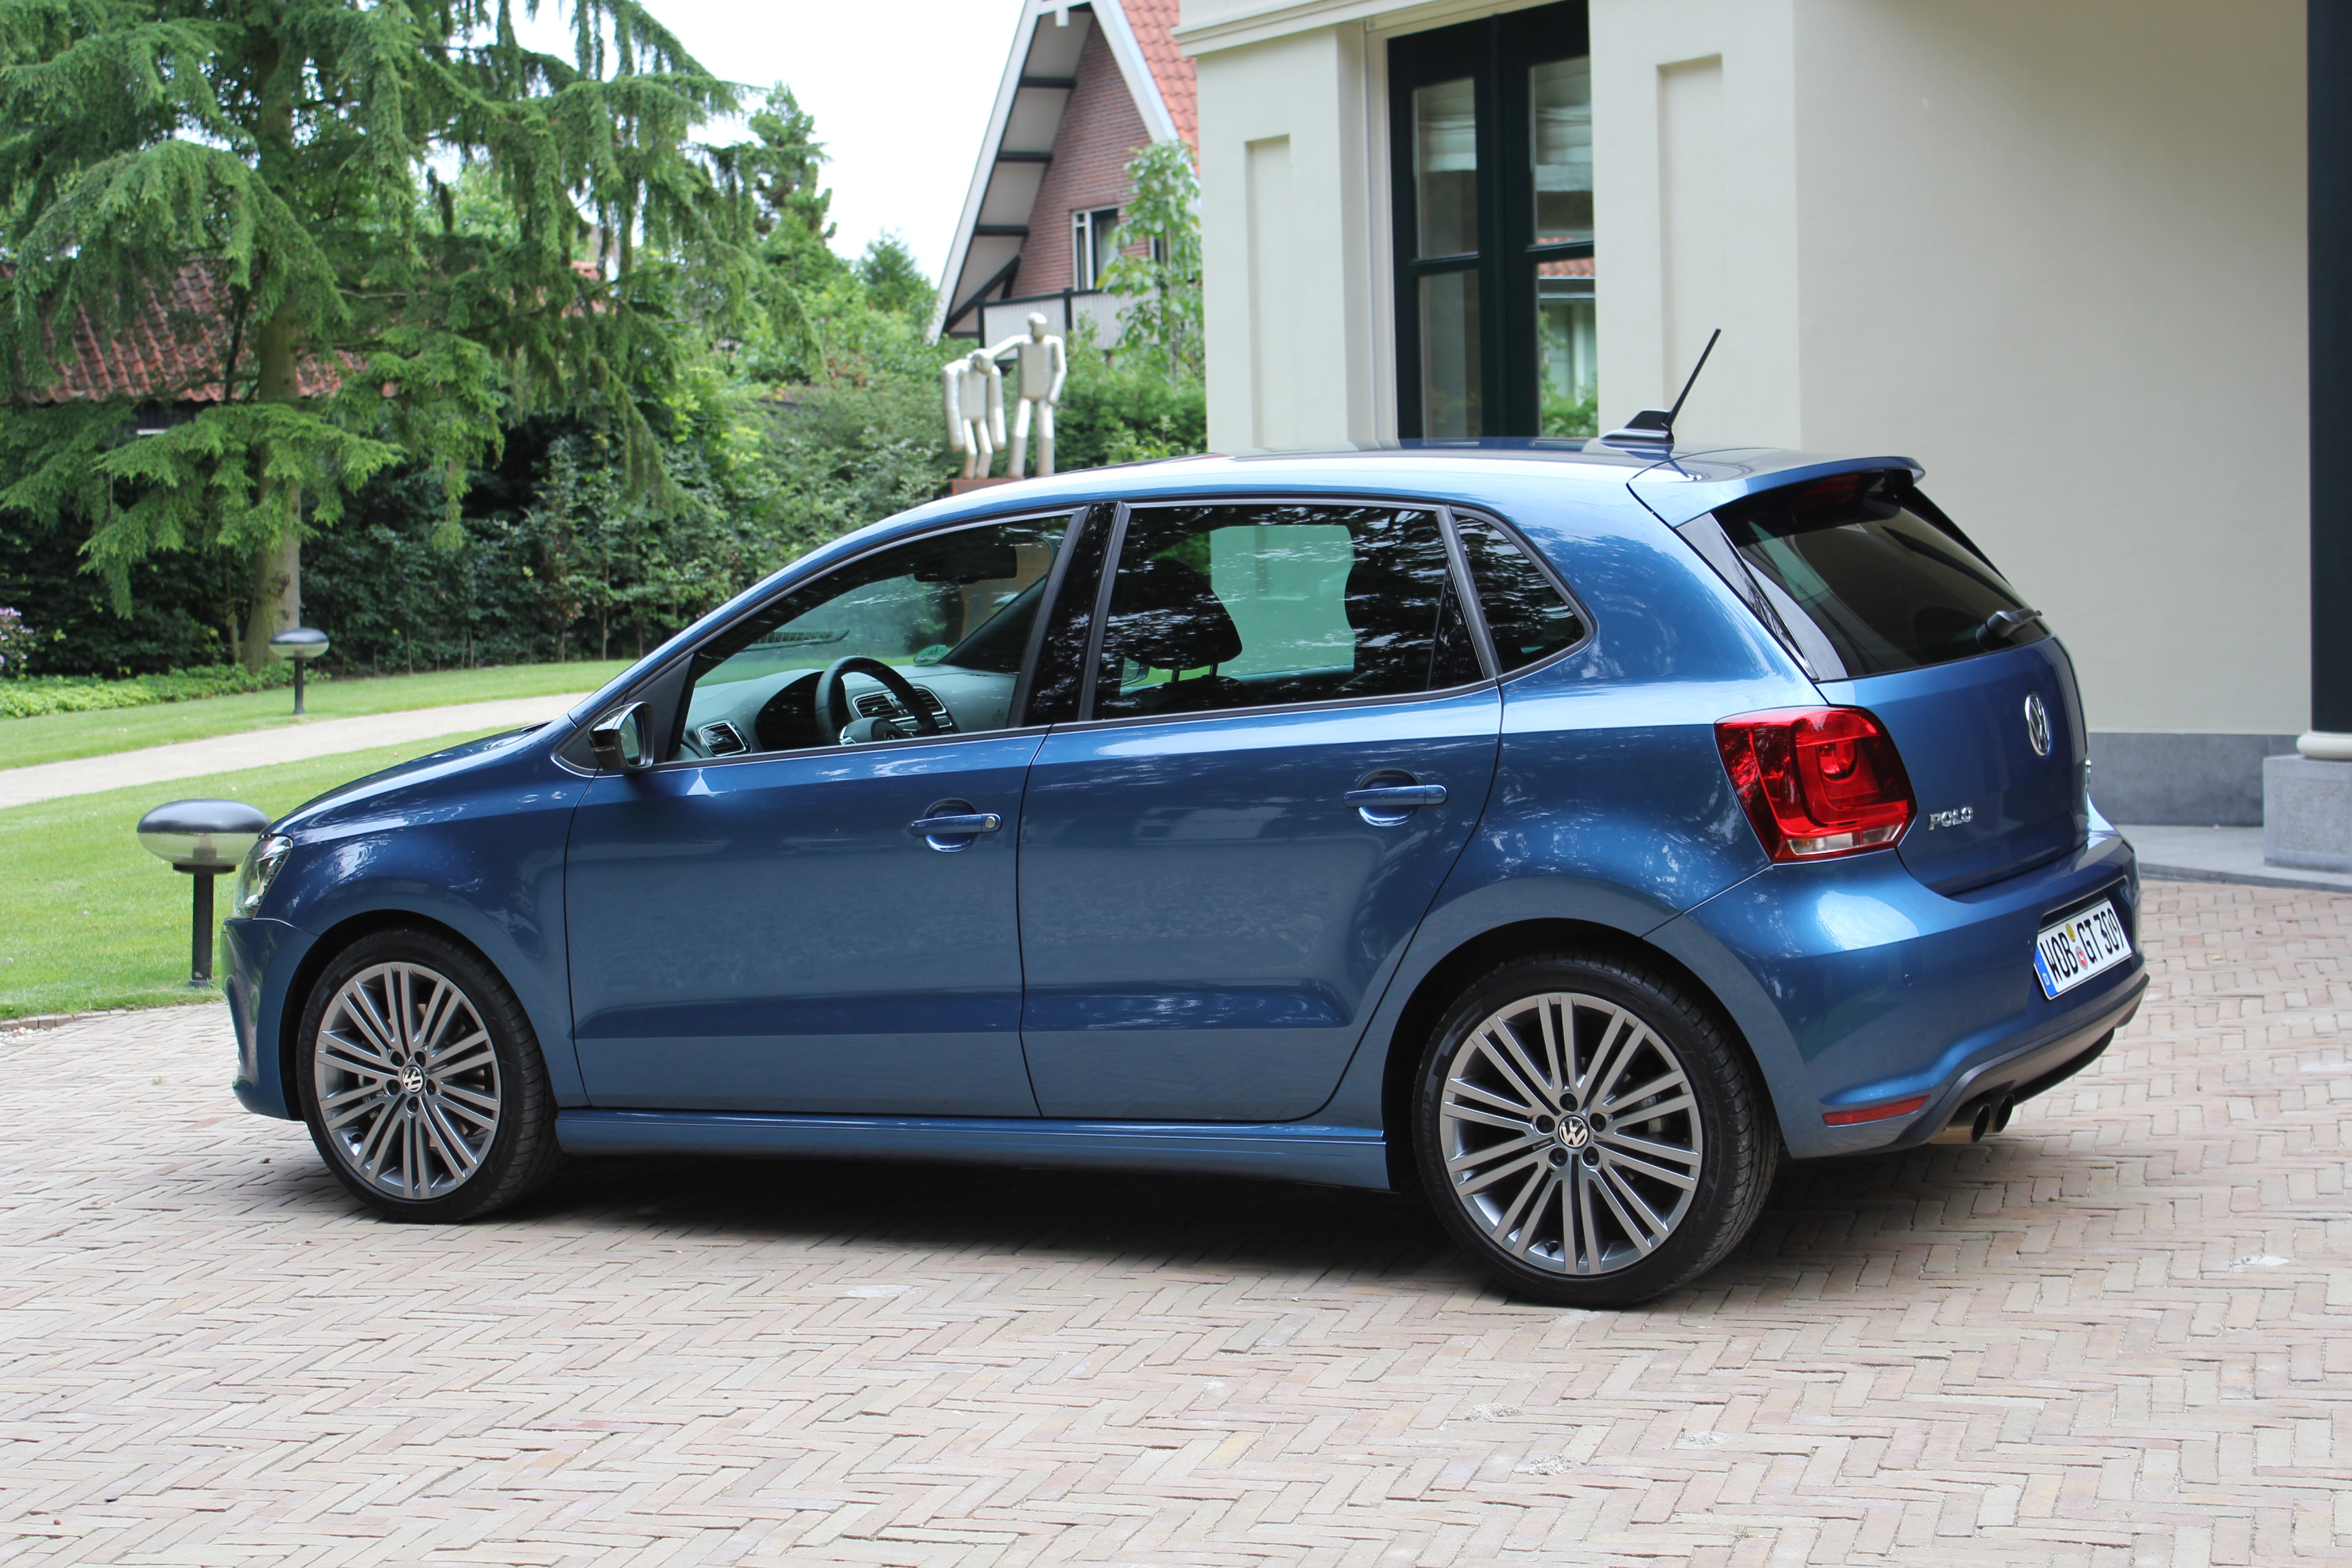 essai volkswagen polo 1 4 tsi 140 act bluegt le meilleur de deux mondes. Black Bedroom Furniture Sets. Home Design Ideas